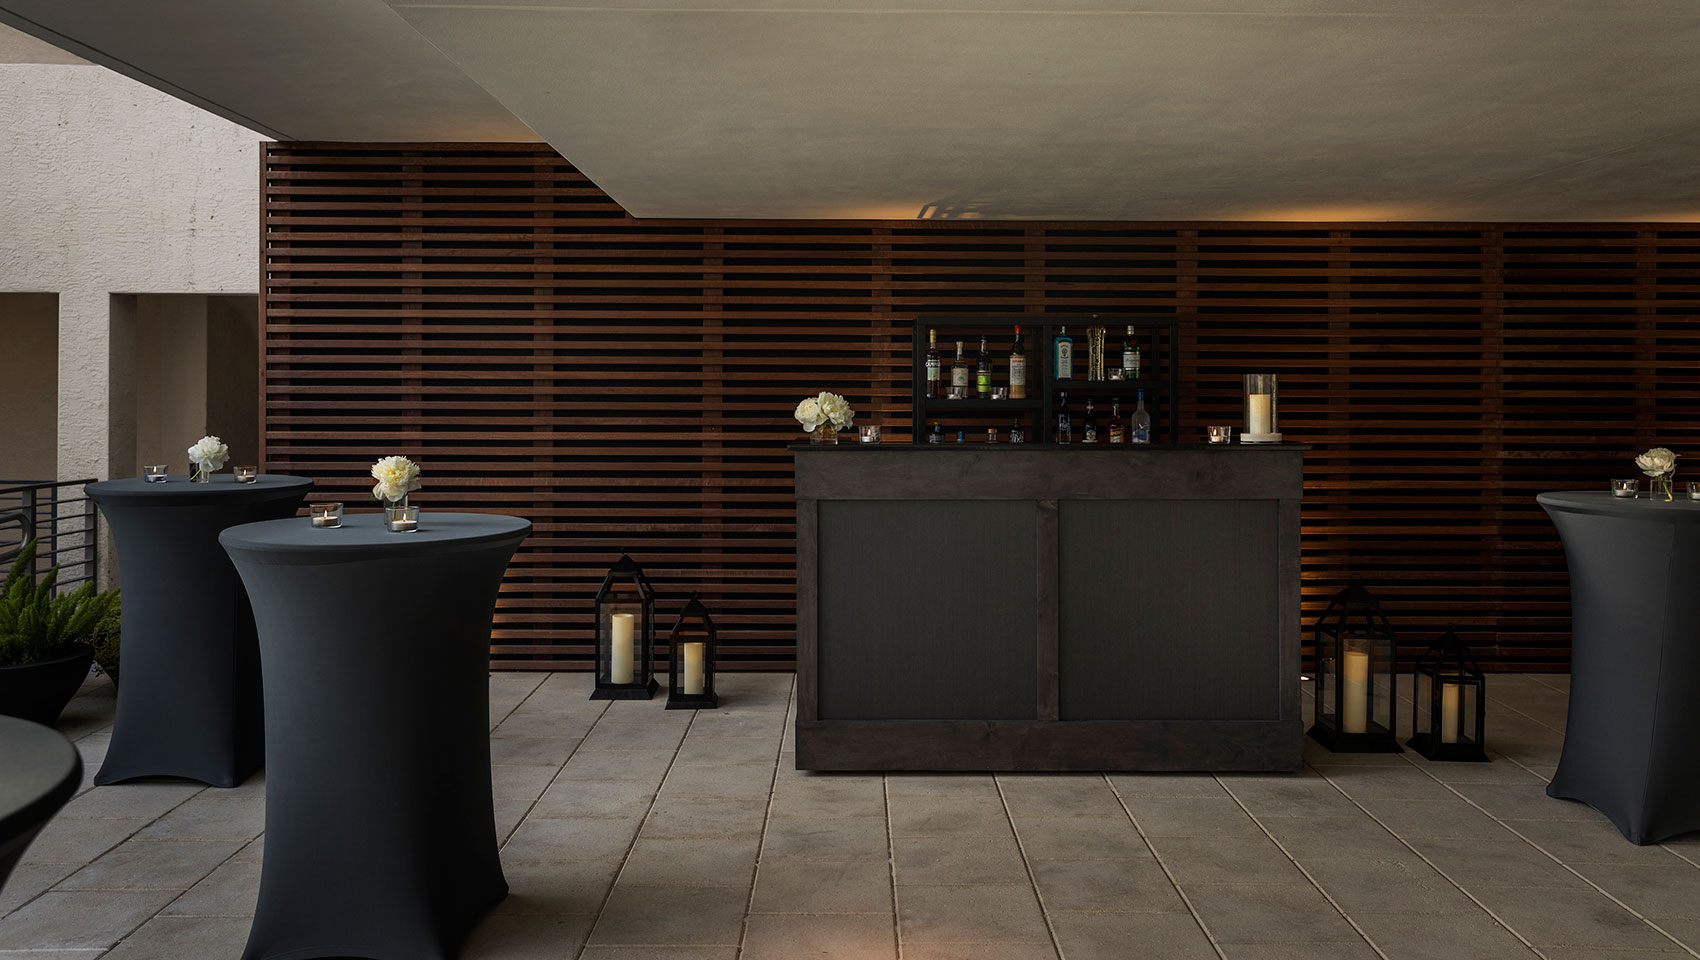 kimpton anglers breezeway with cocktail tables and a bar set for a social event